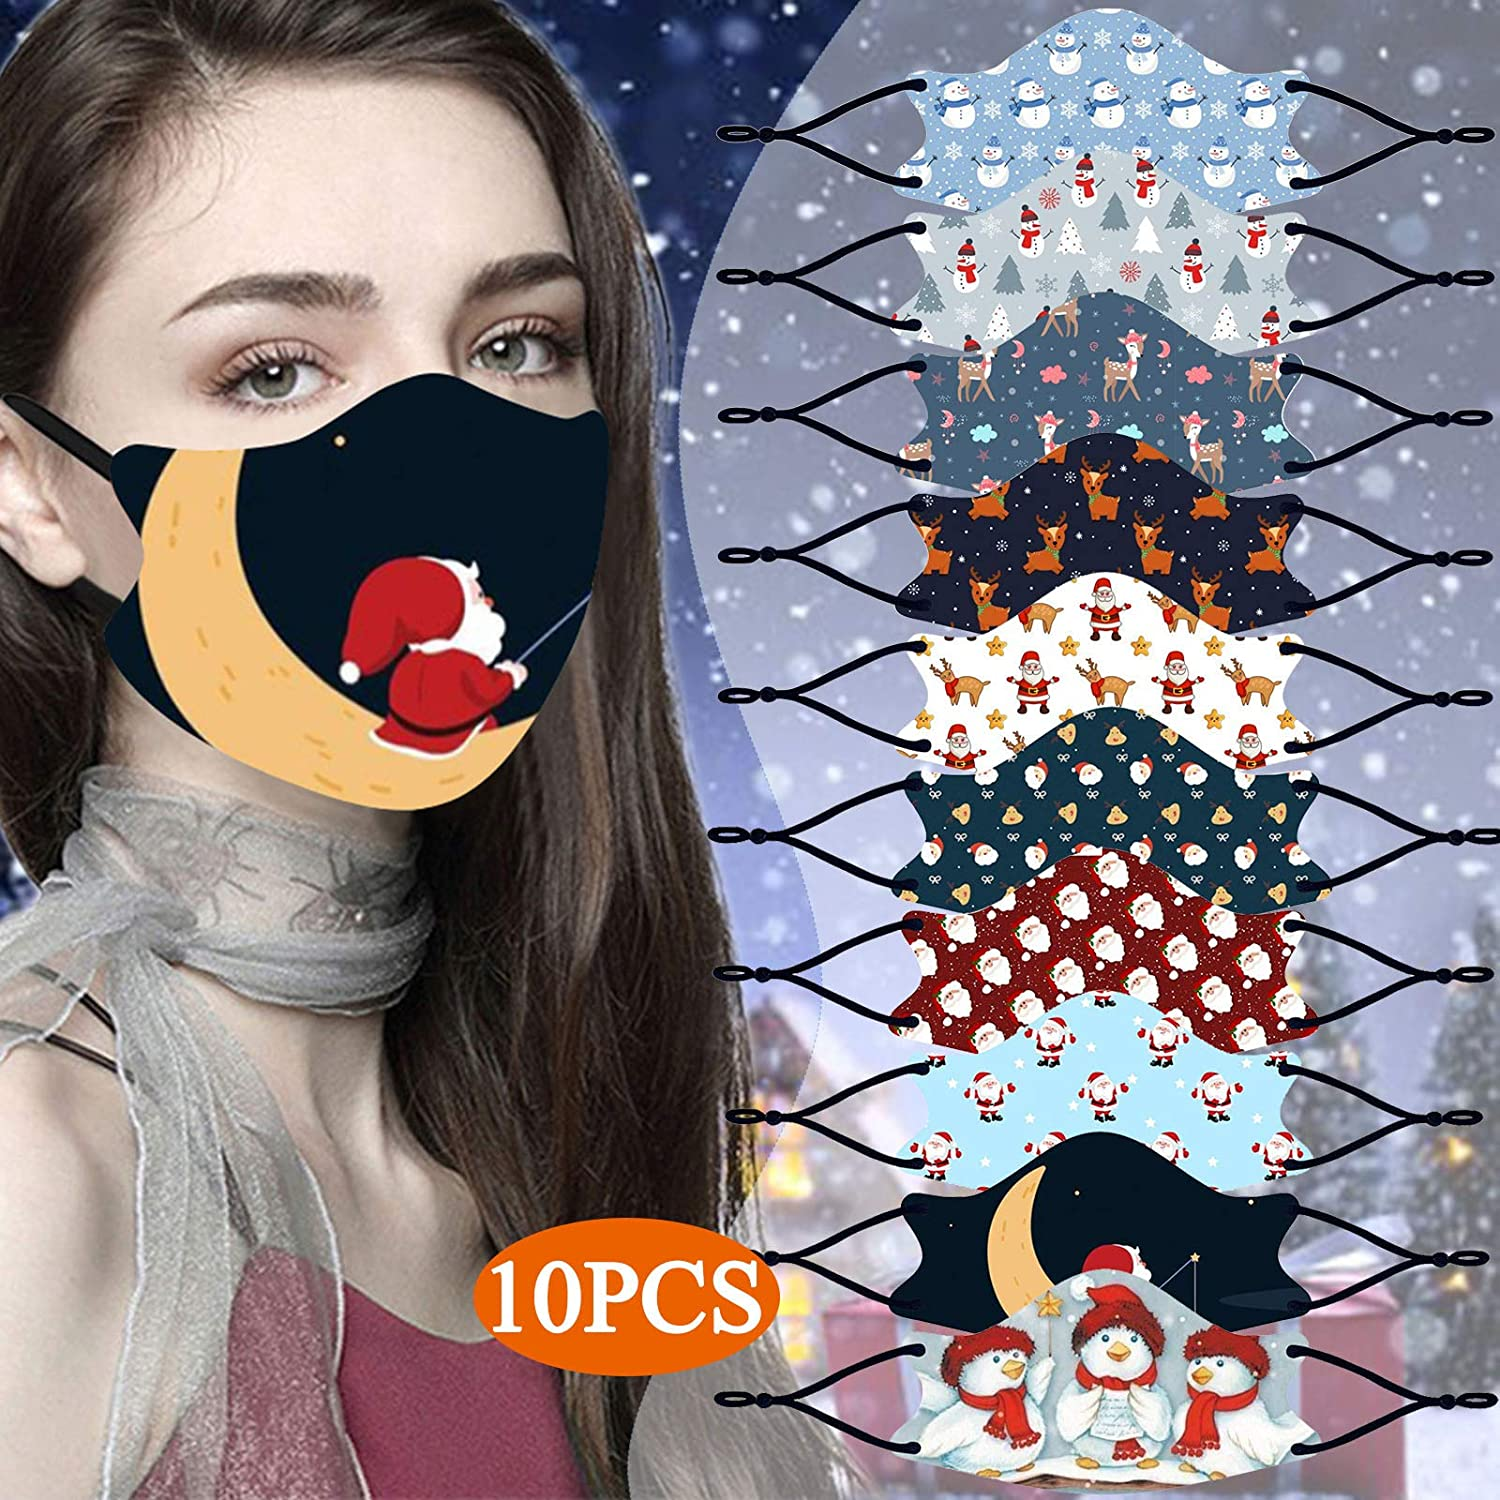 10PCS Washable Cloth Face_Mask Reusable and Adjustable Protective Fabric Face Cover w/Dust Filter Pocket - Tropical Floral